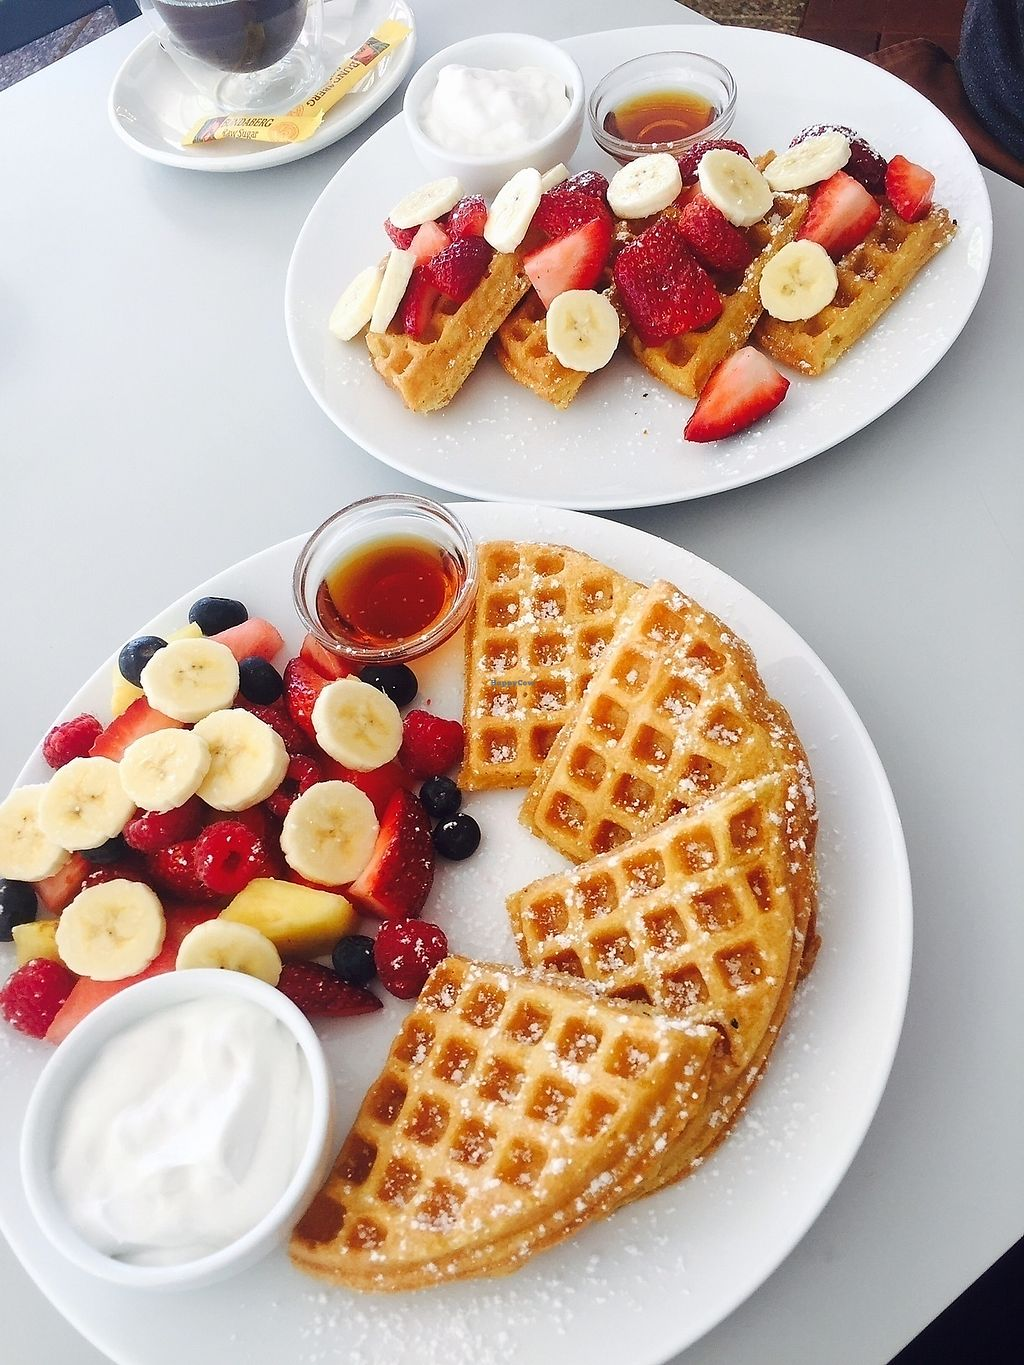 """Photo of Waffle on Cairns  by <a href=""""/members/profile/shana.lea"""">shana.lea</a> <br/>Vegan Fruit Salad Yummy Yummy and vegan The Classic <br/> August 28, 2017  - <a href='/contact/abuse/image/97907/298103'>Report</a>"""